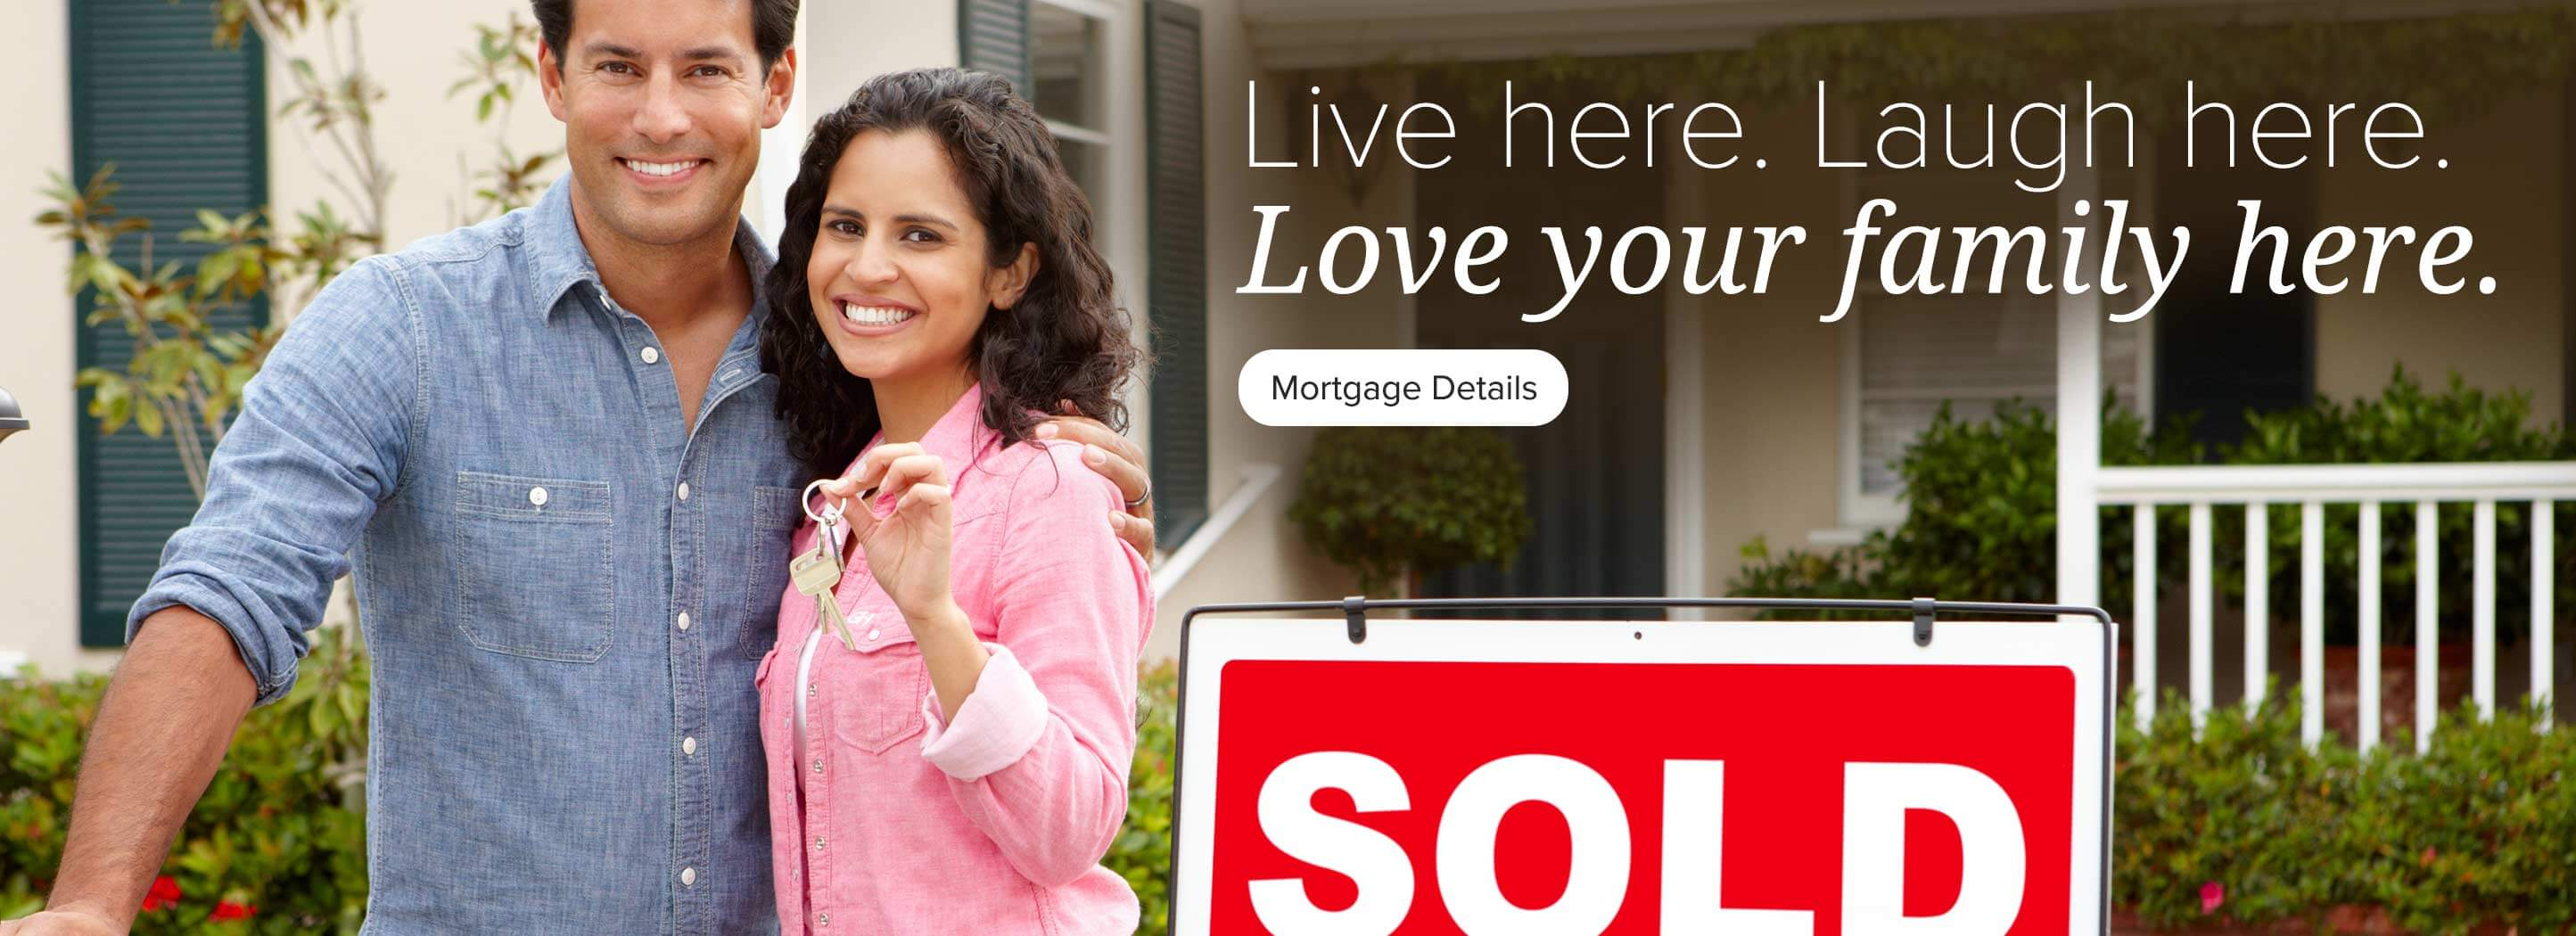 Live here. Laugh here. Love your family here. Mortgage Details.